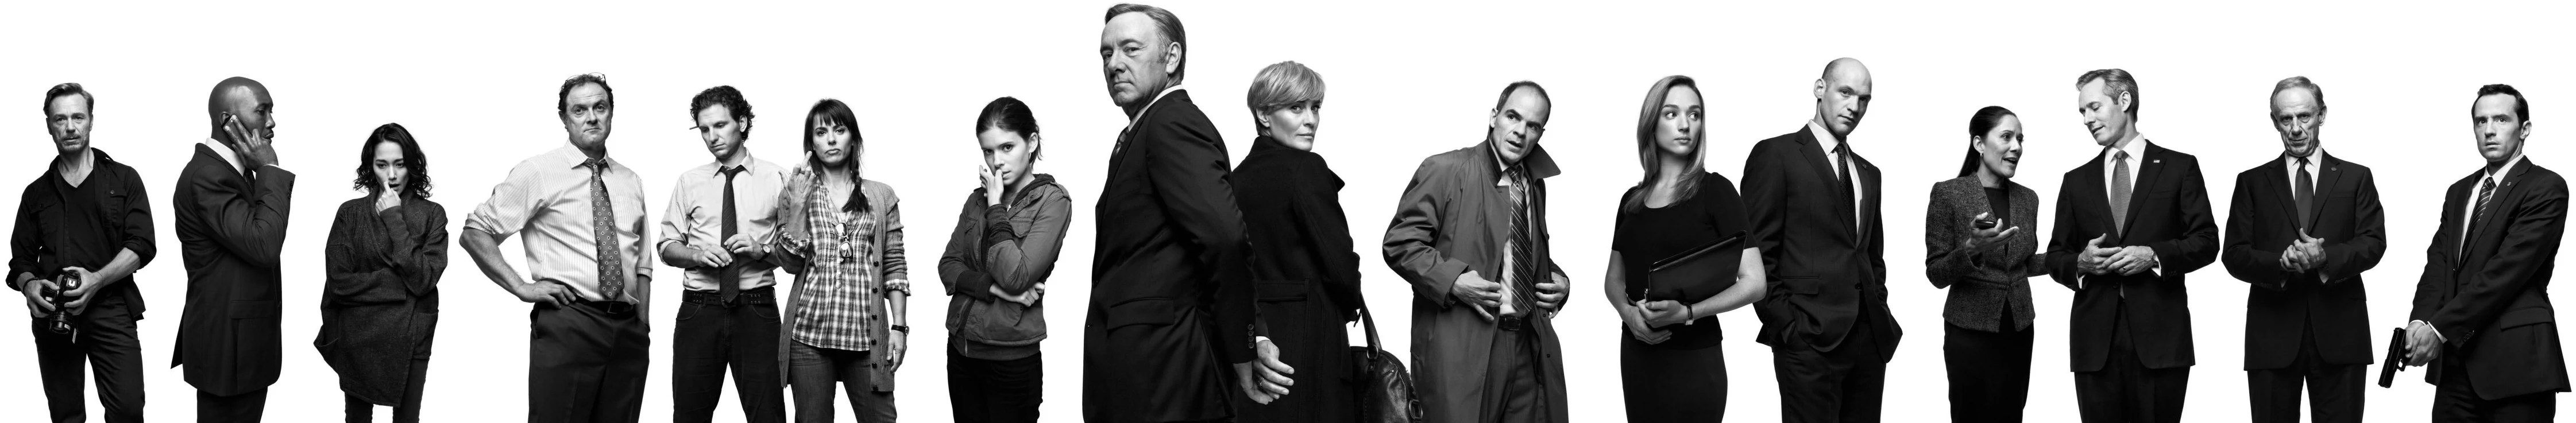 Frank Underwood Quotes Wallpaper House Of Cards If You Don T Like How The Table Is Set